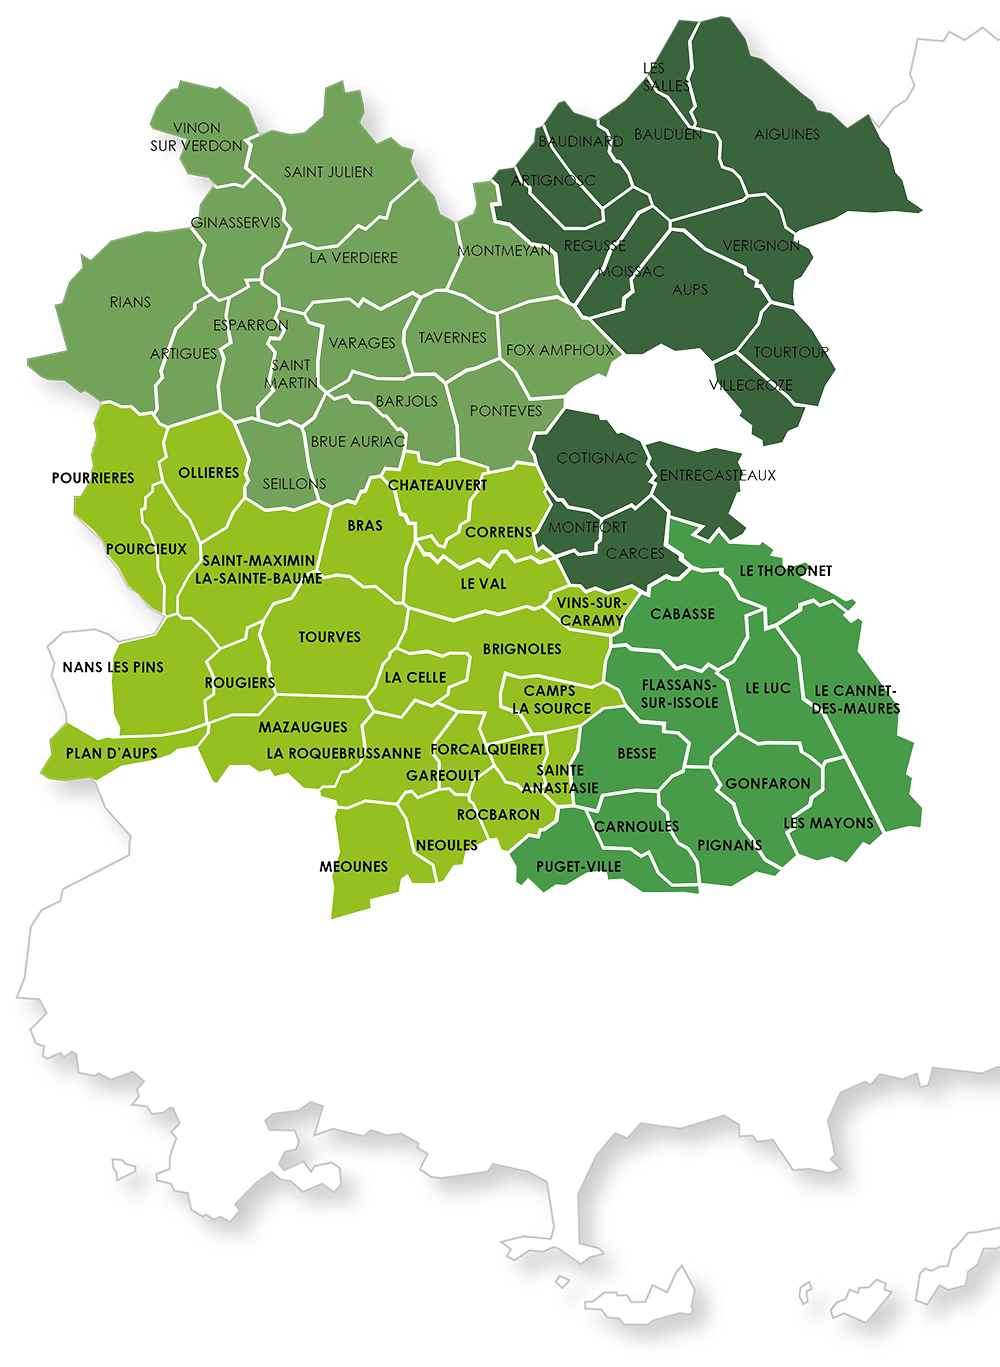 CARTE DU TERRITOIRE SIVED NG